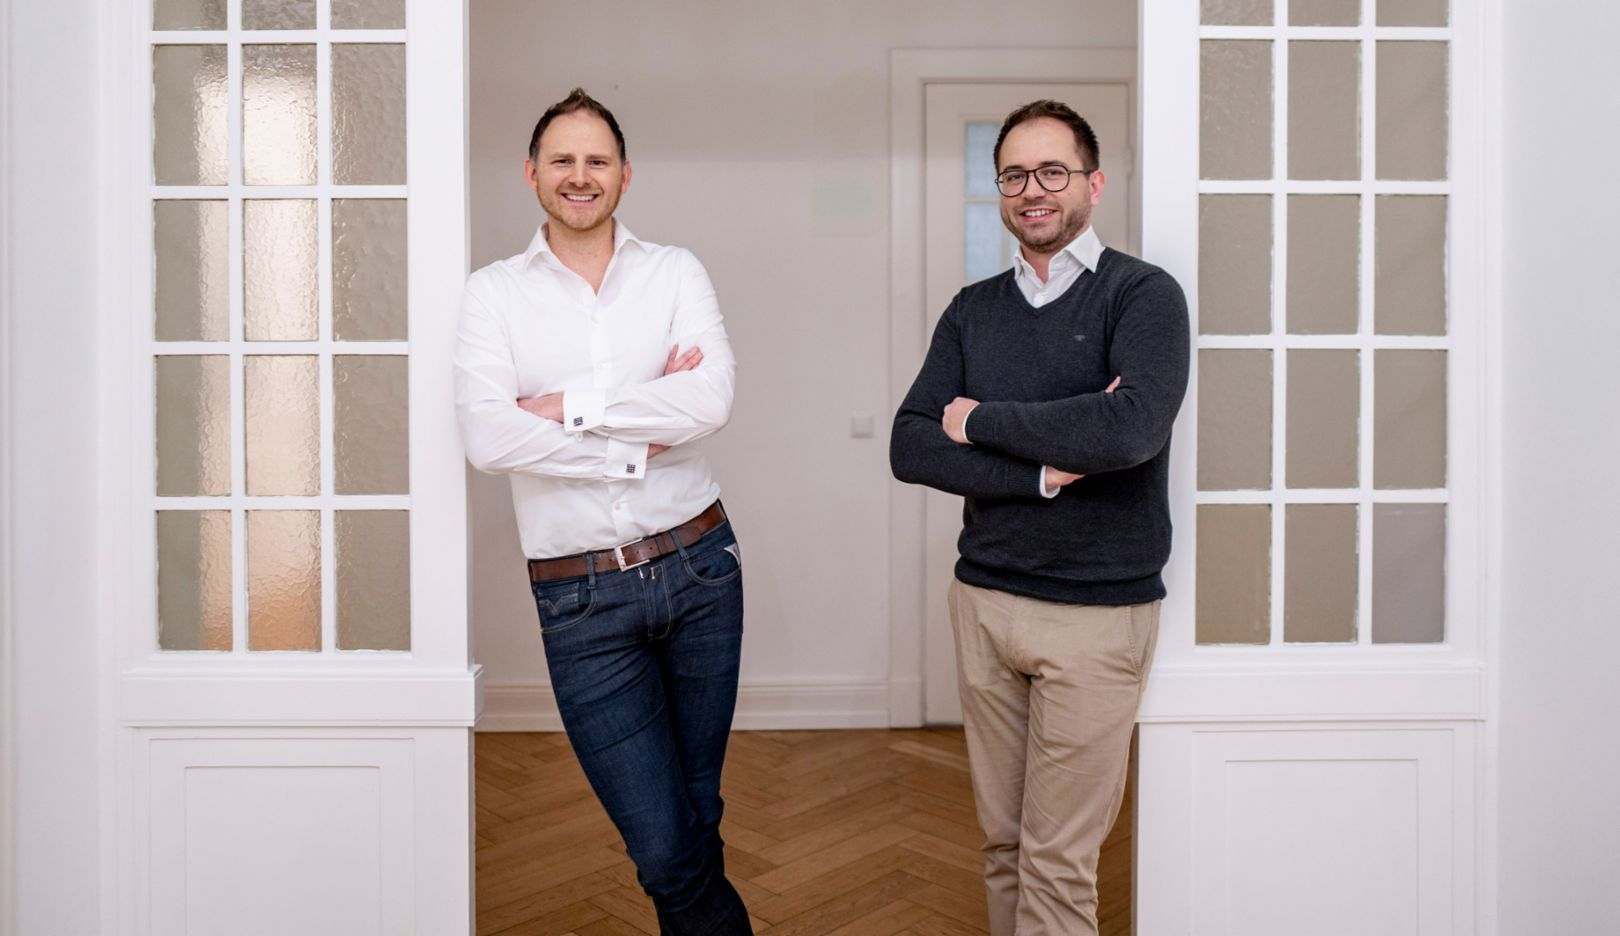 Henner Heistermann, Founder and CEO of Nitrobox, Sven Grimminger, co-founder and CTO, l-r, 2020, Porsche AG